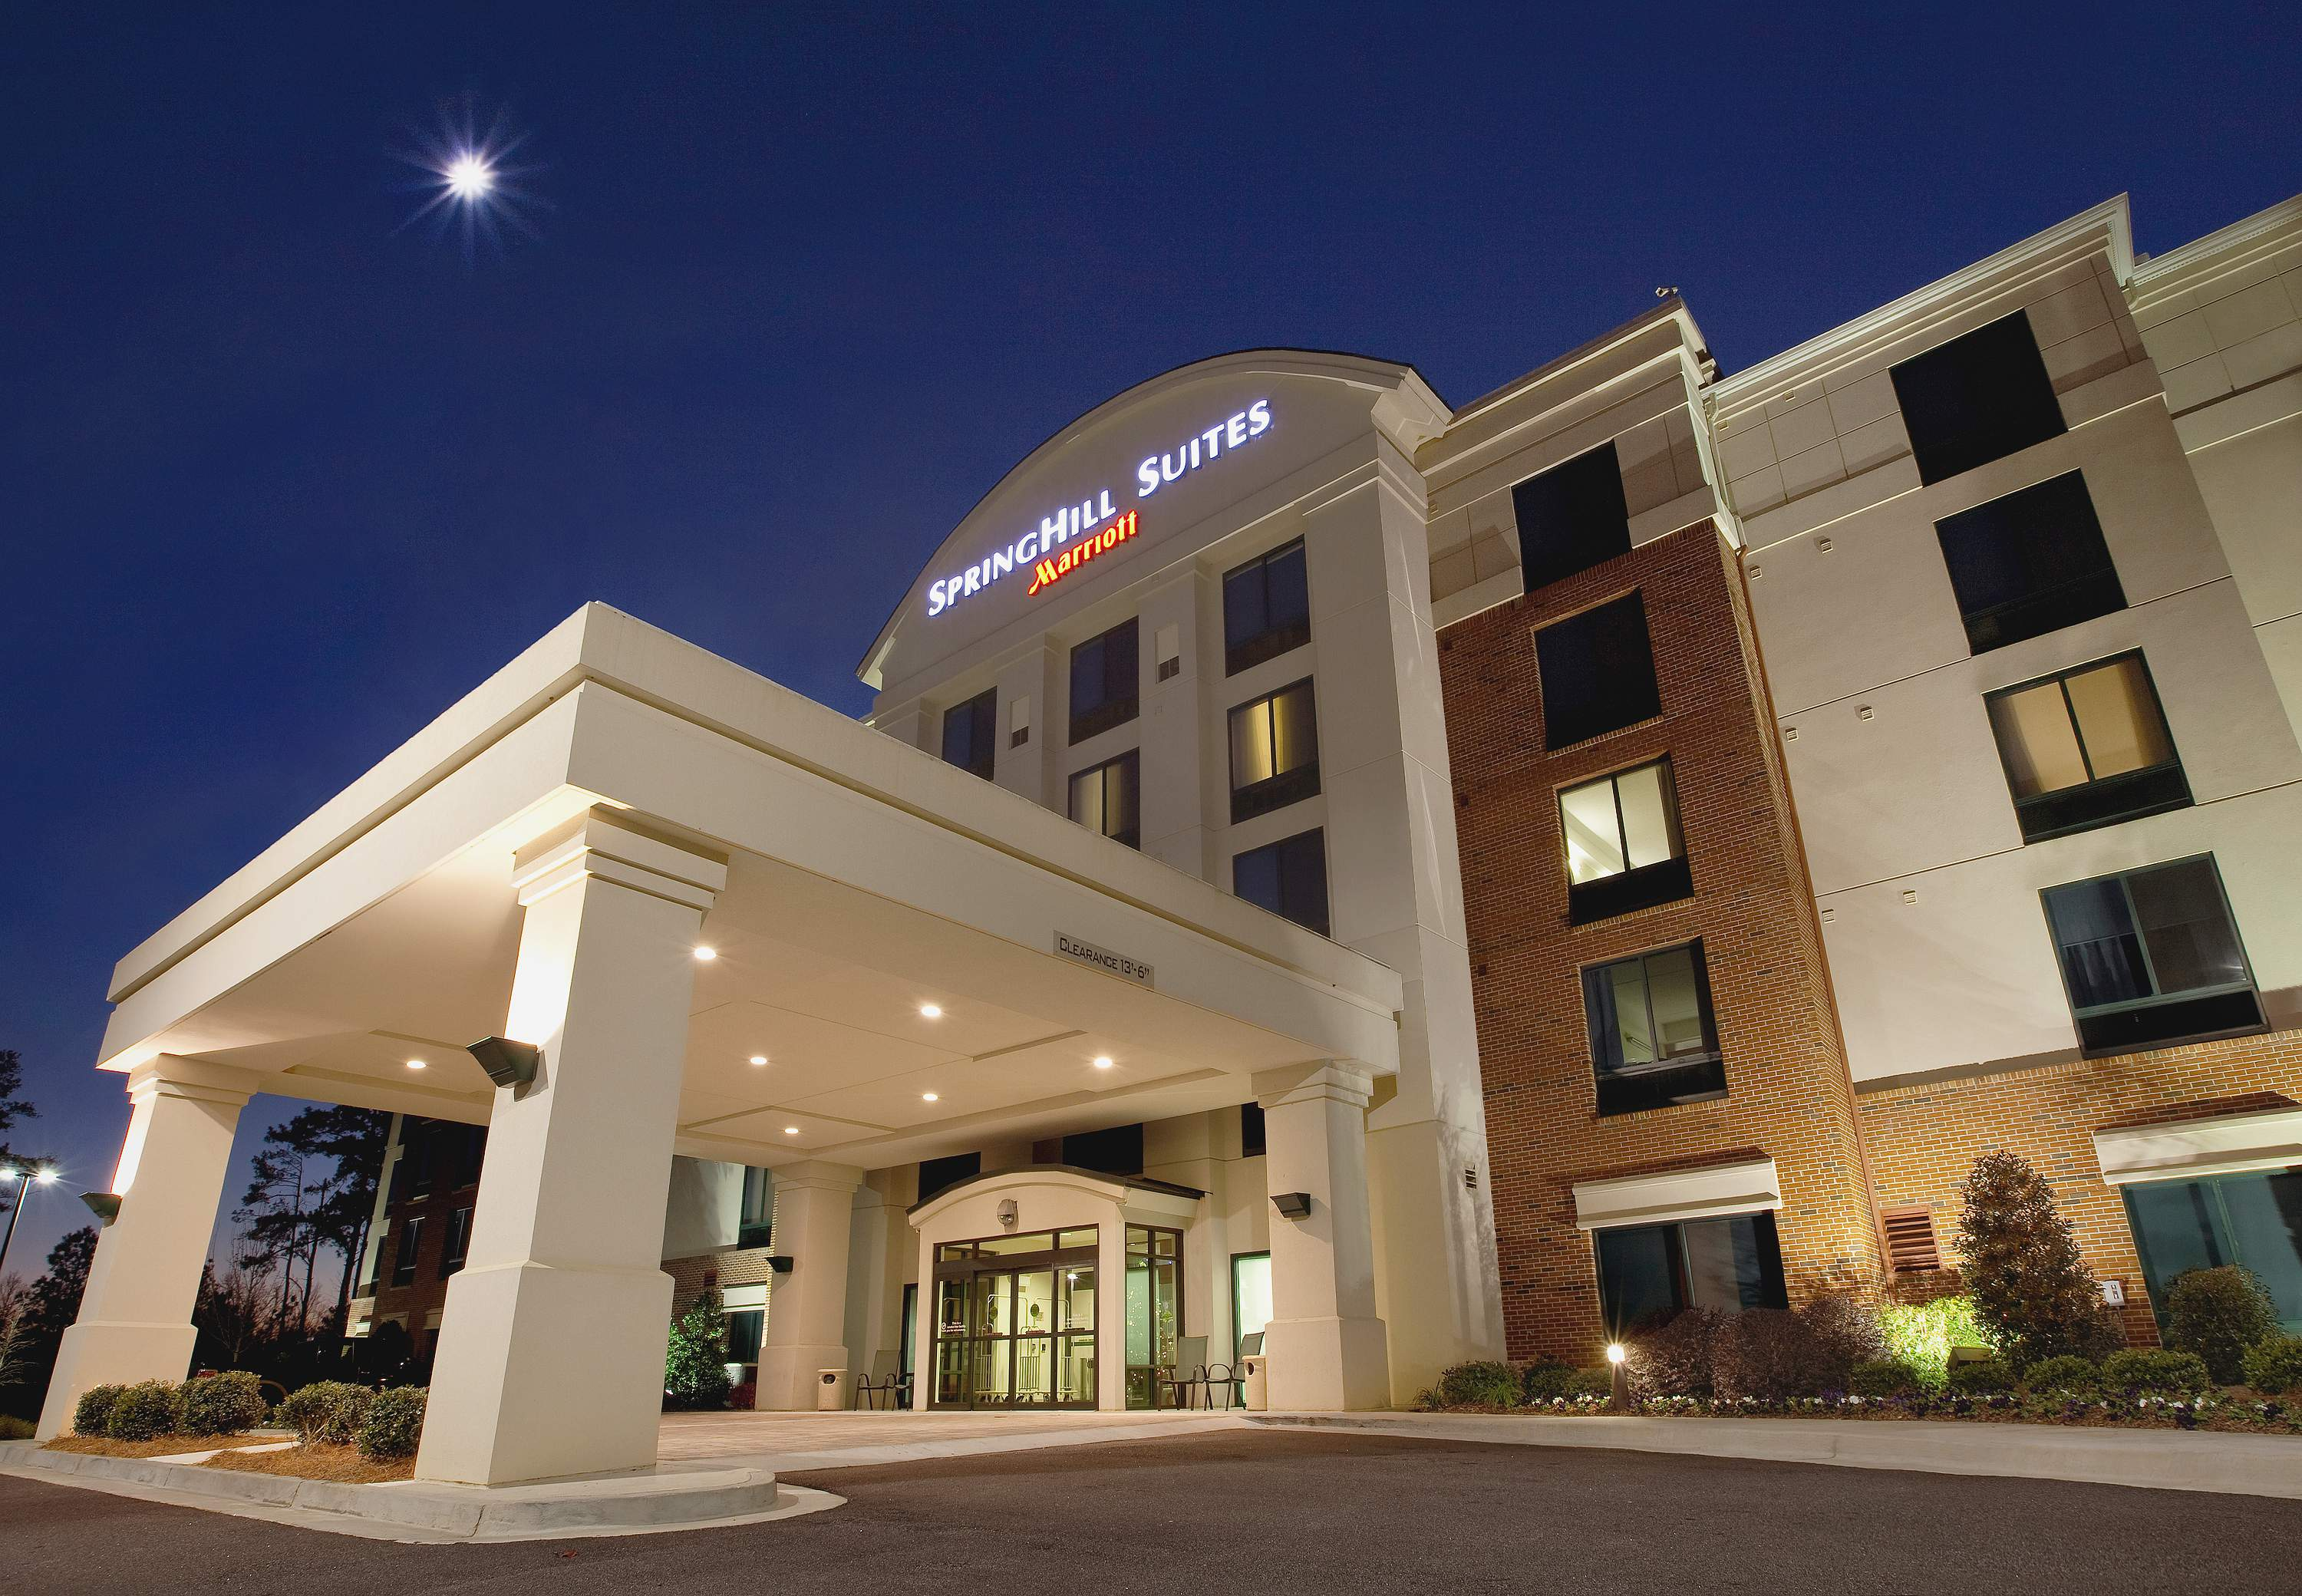 SpringHill Suites by Marriott Athens West image 0